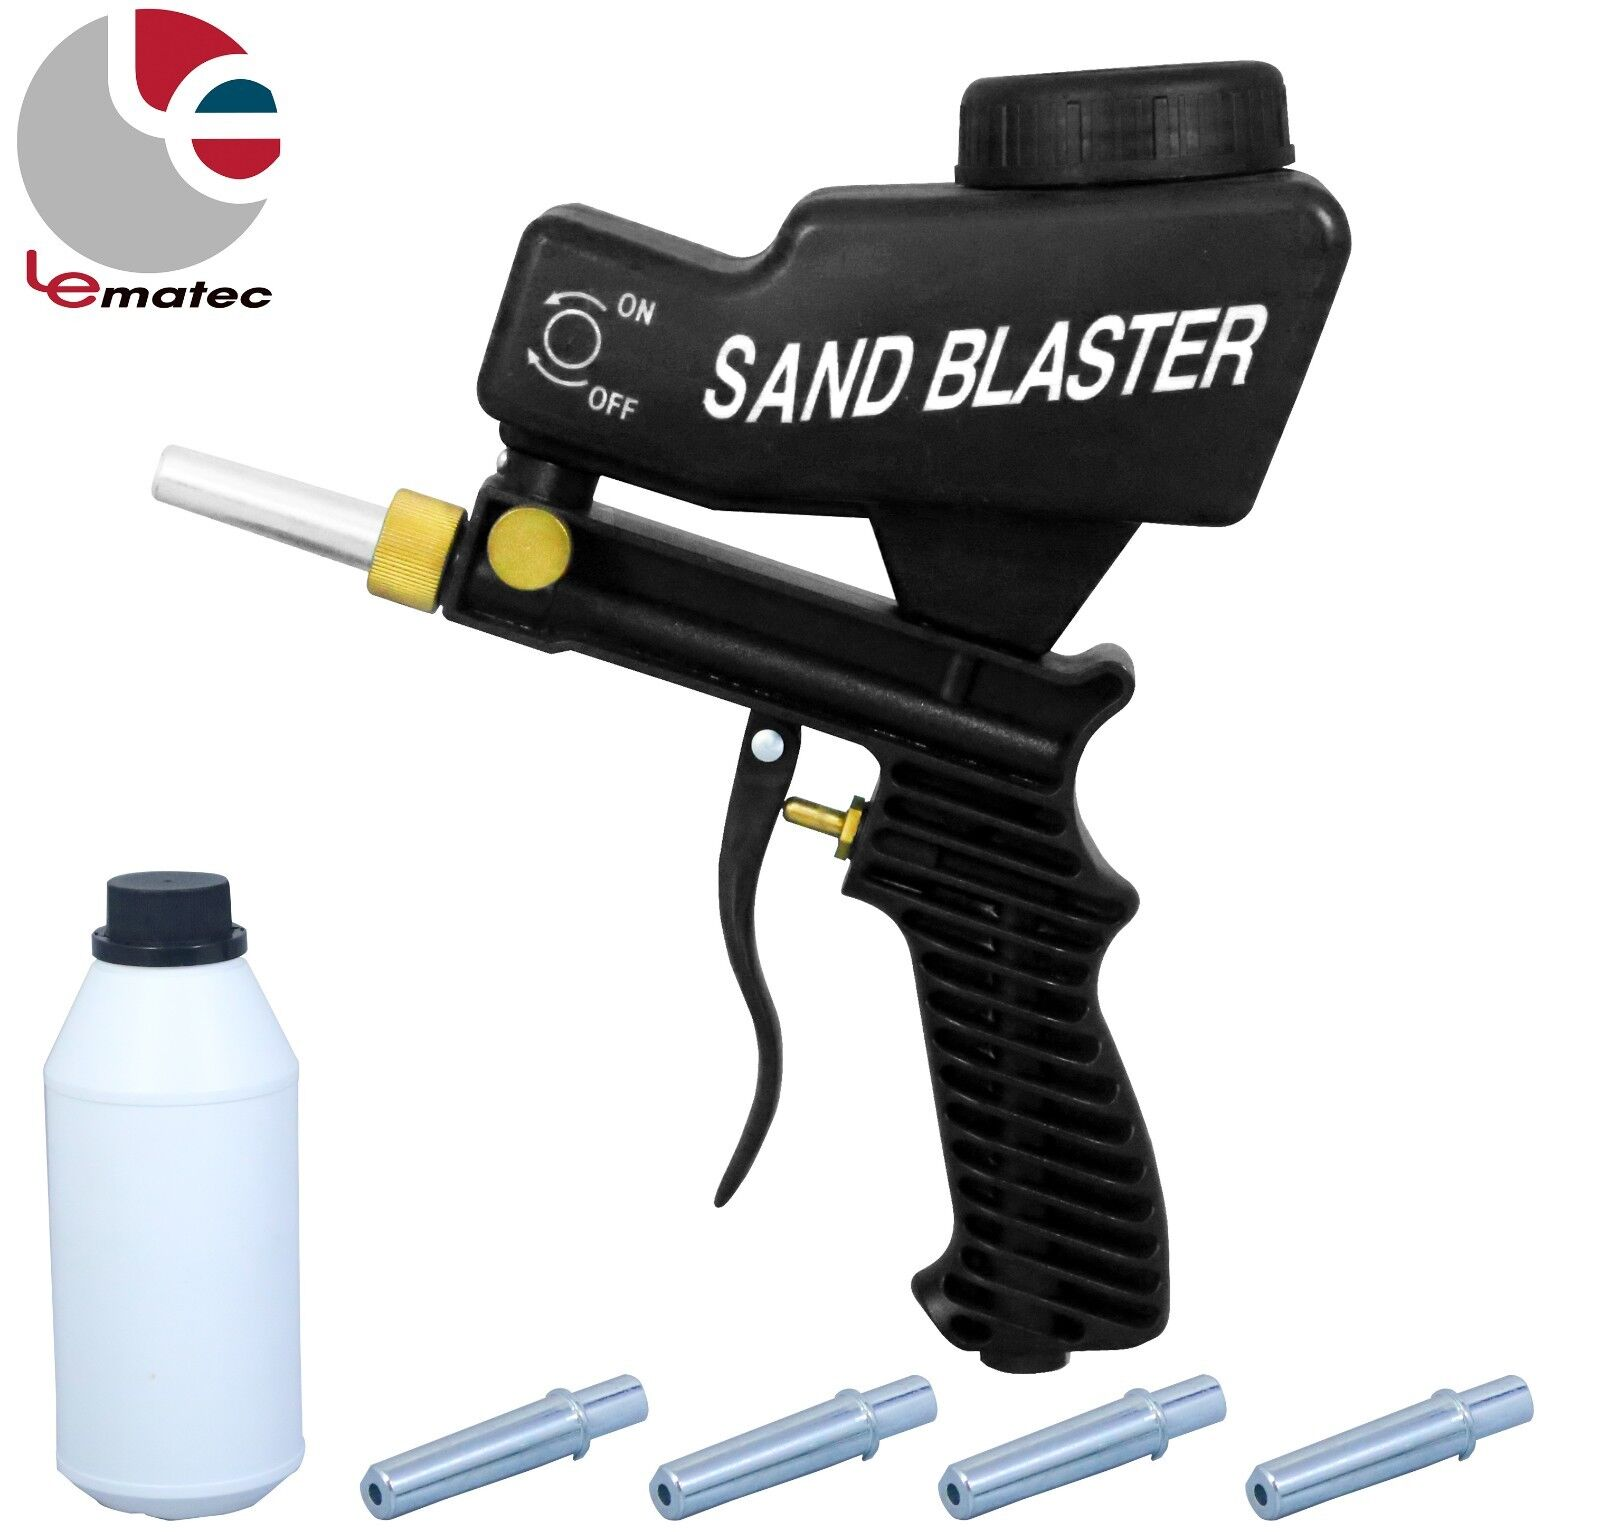 LEMATEC Sandblaster gun with Sand Canned four nozzle Air Power Sandblasting tool